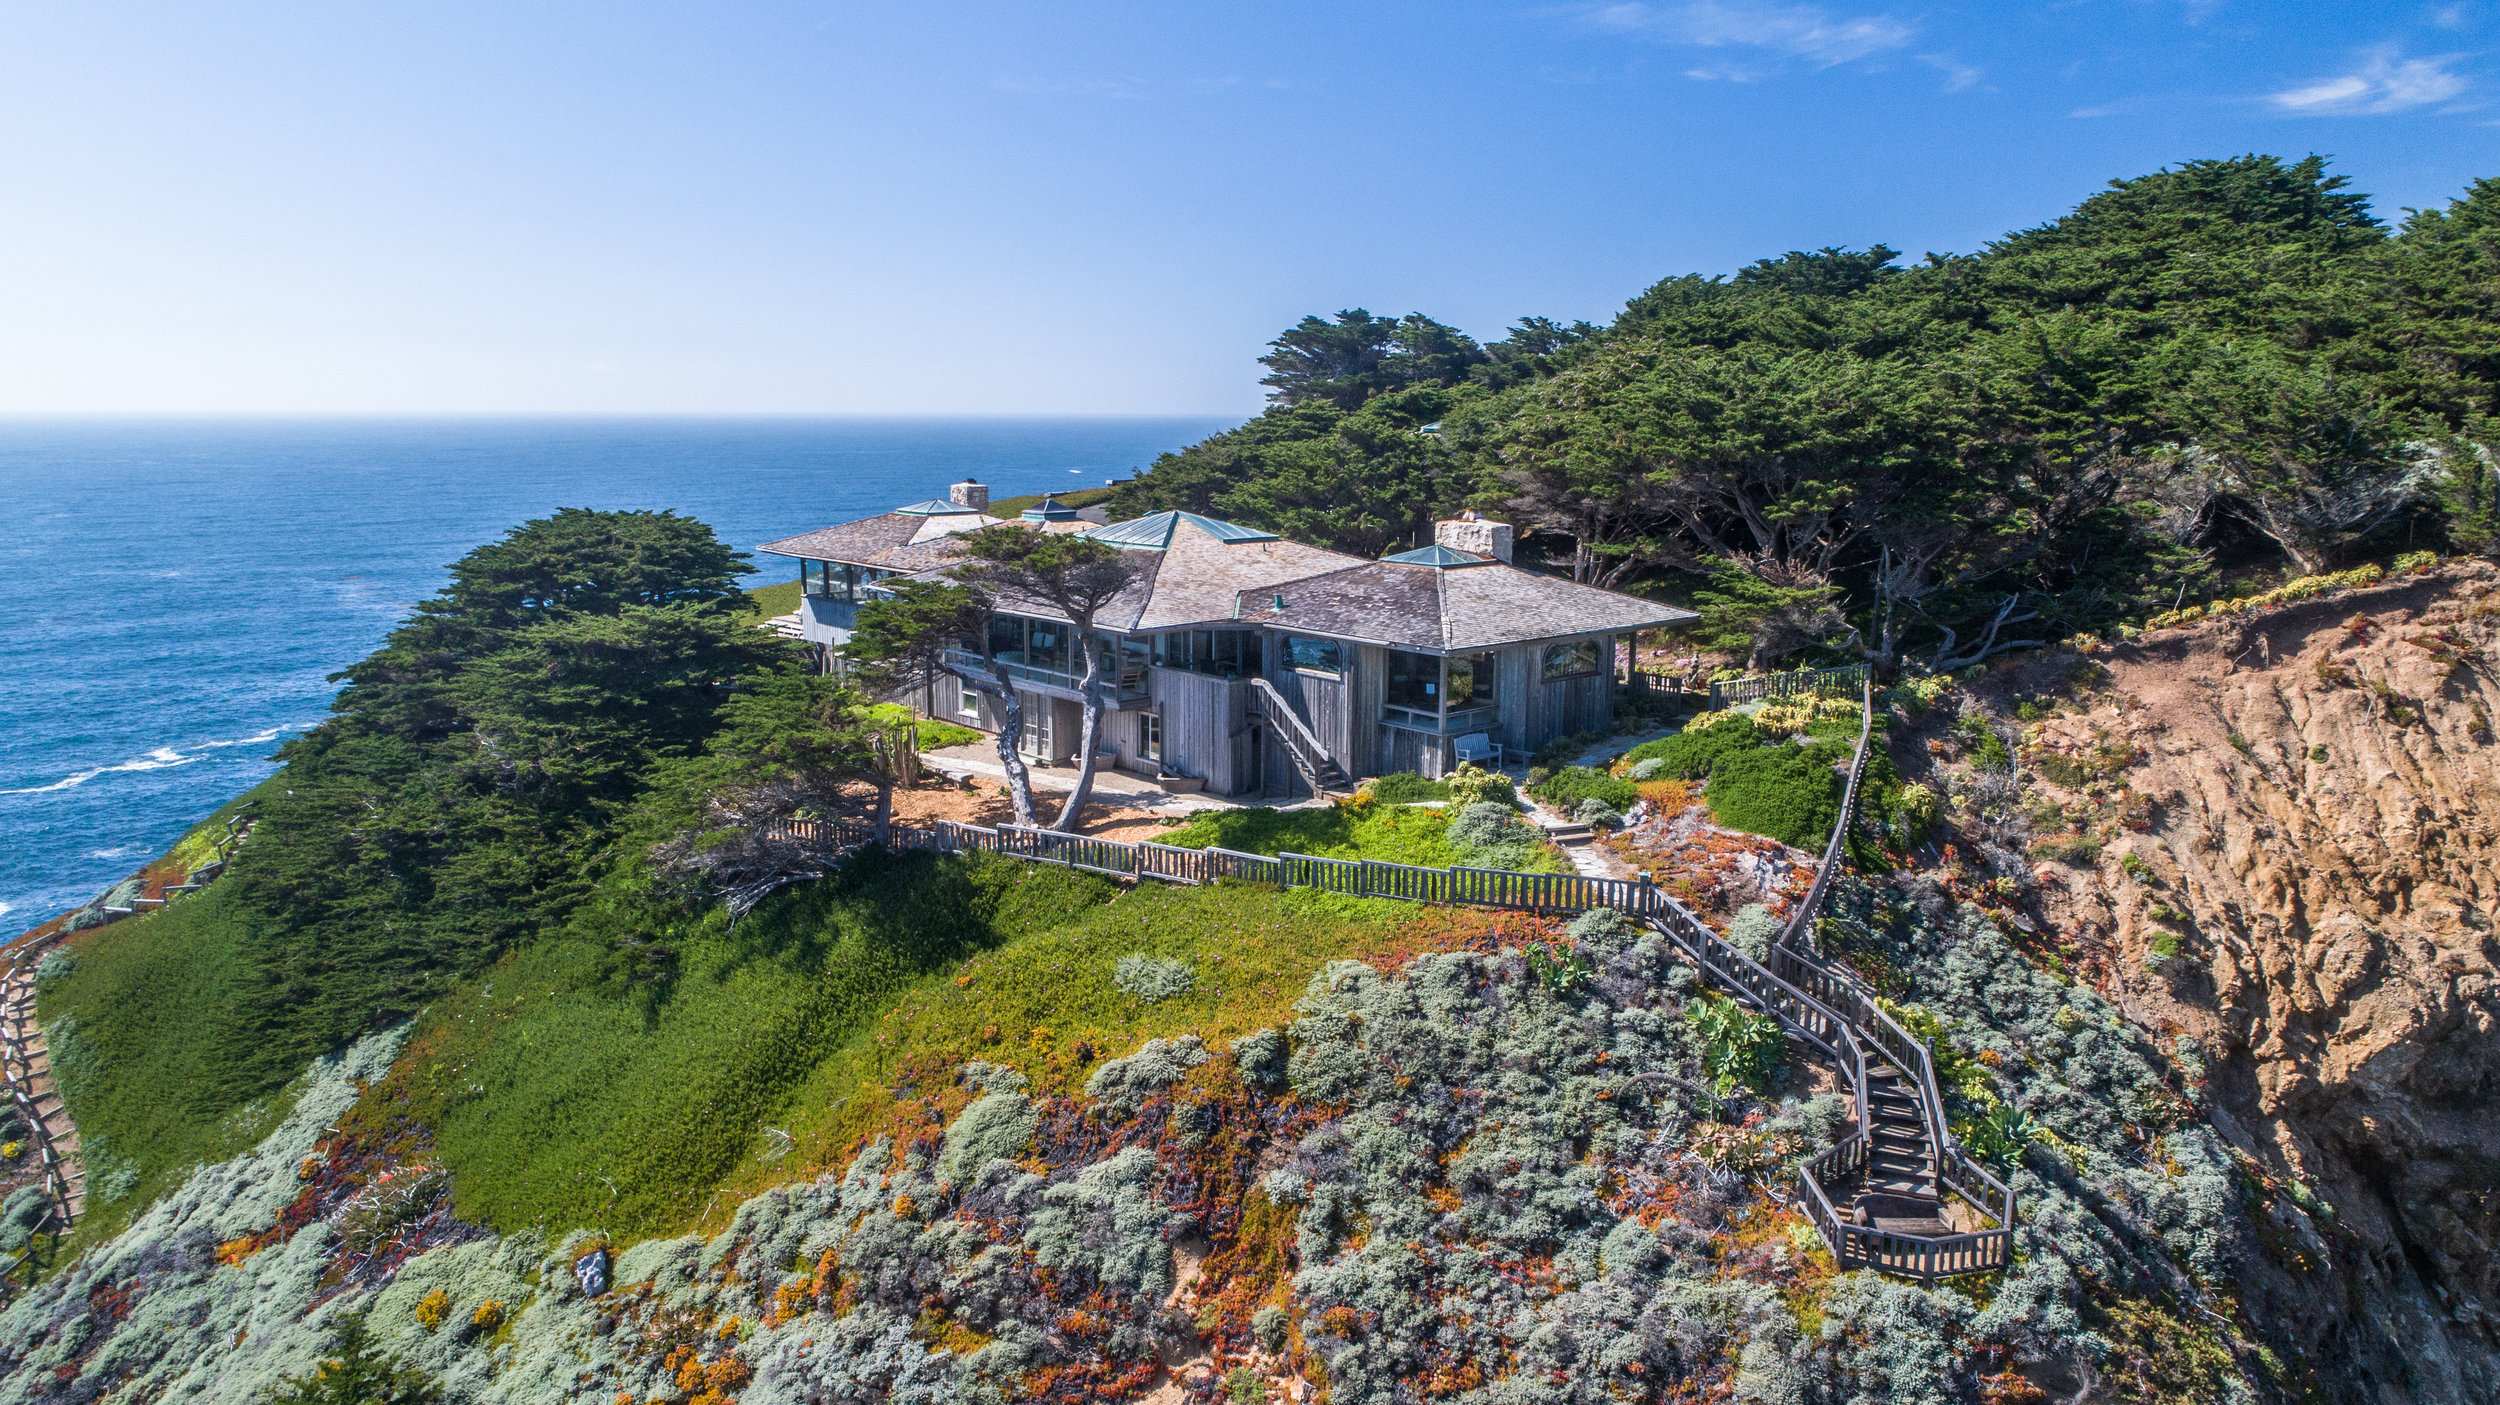 Curbed S.F. - Cliffside home in Monterey asks $16 million